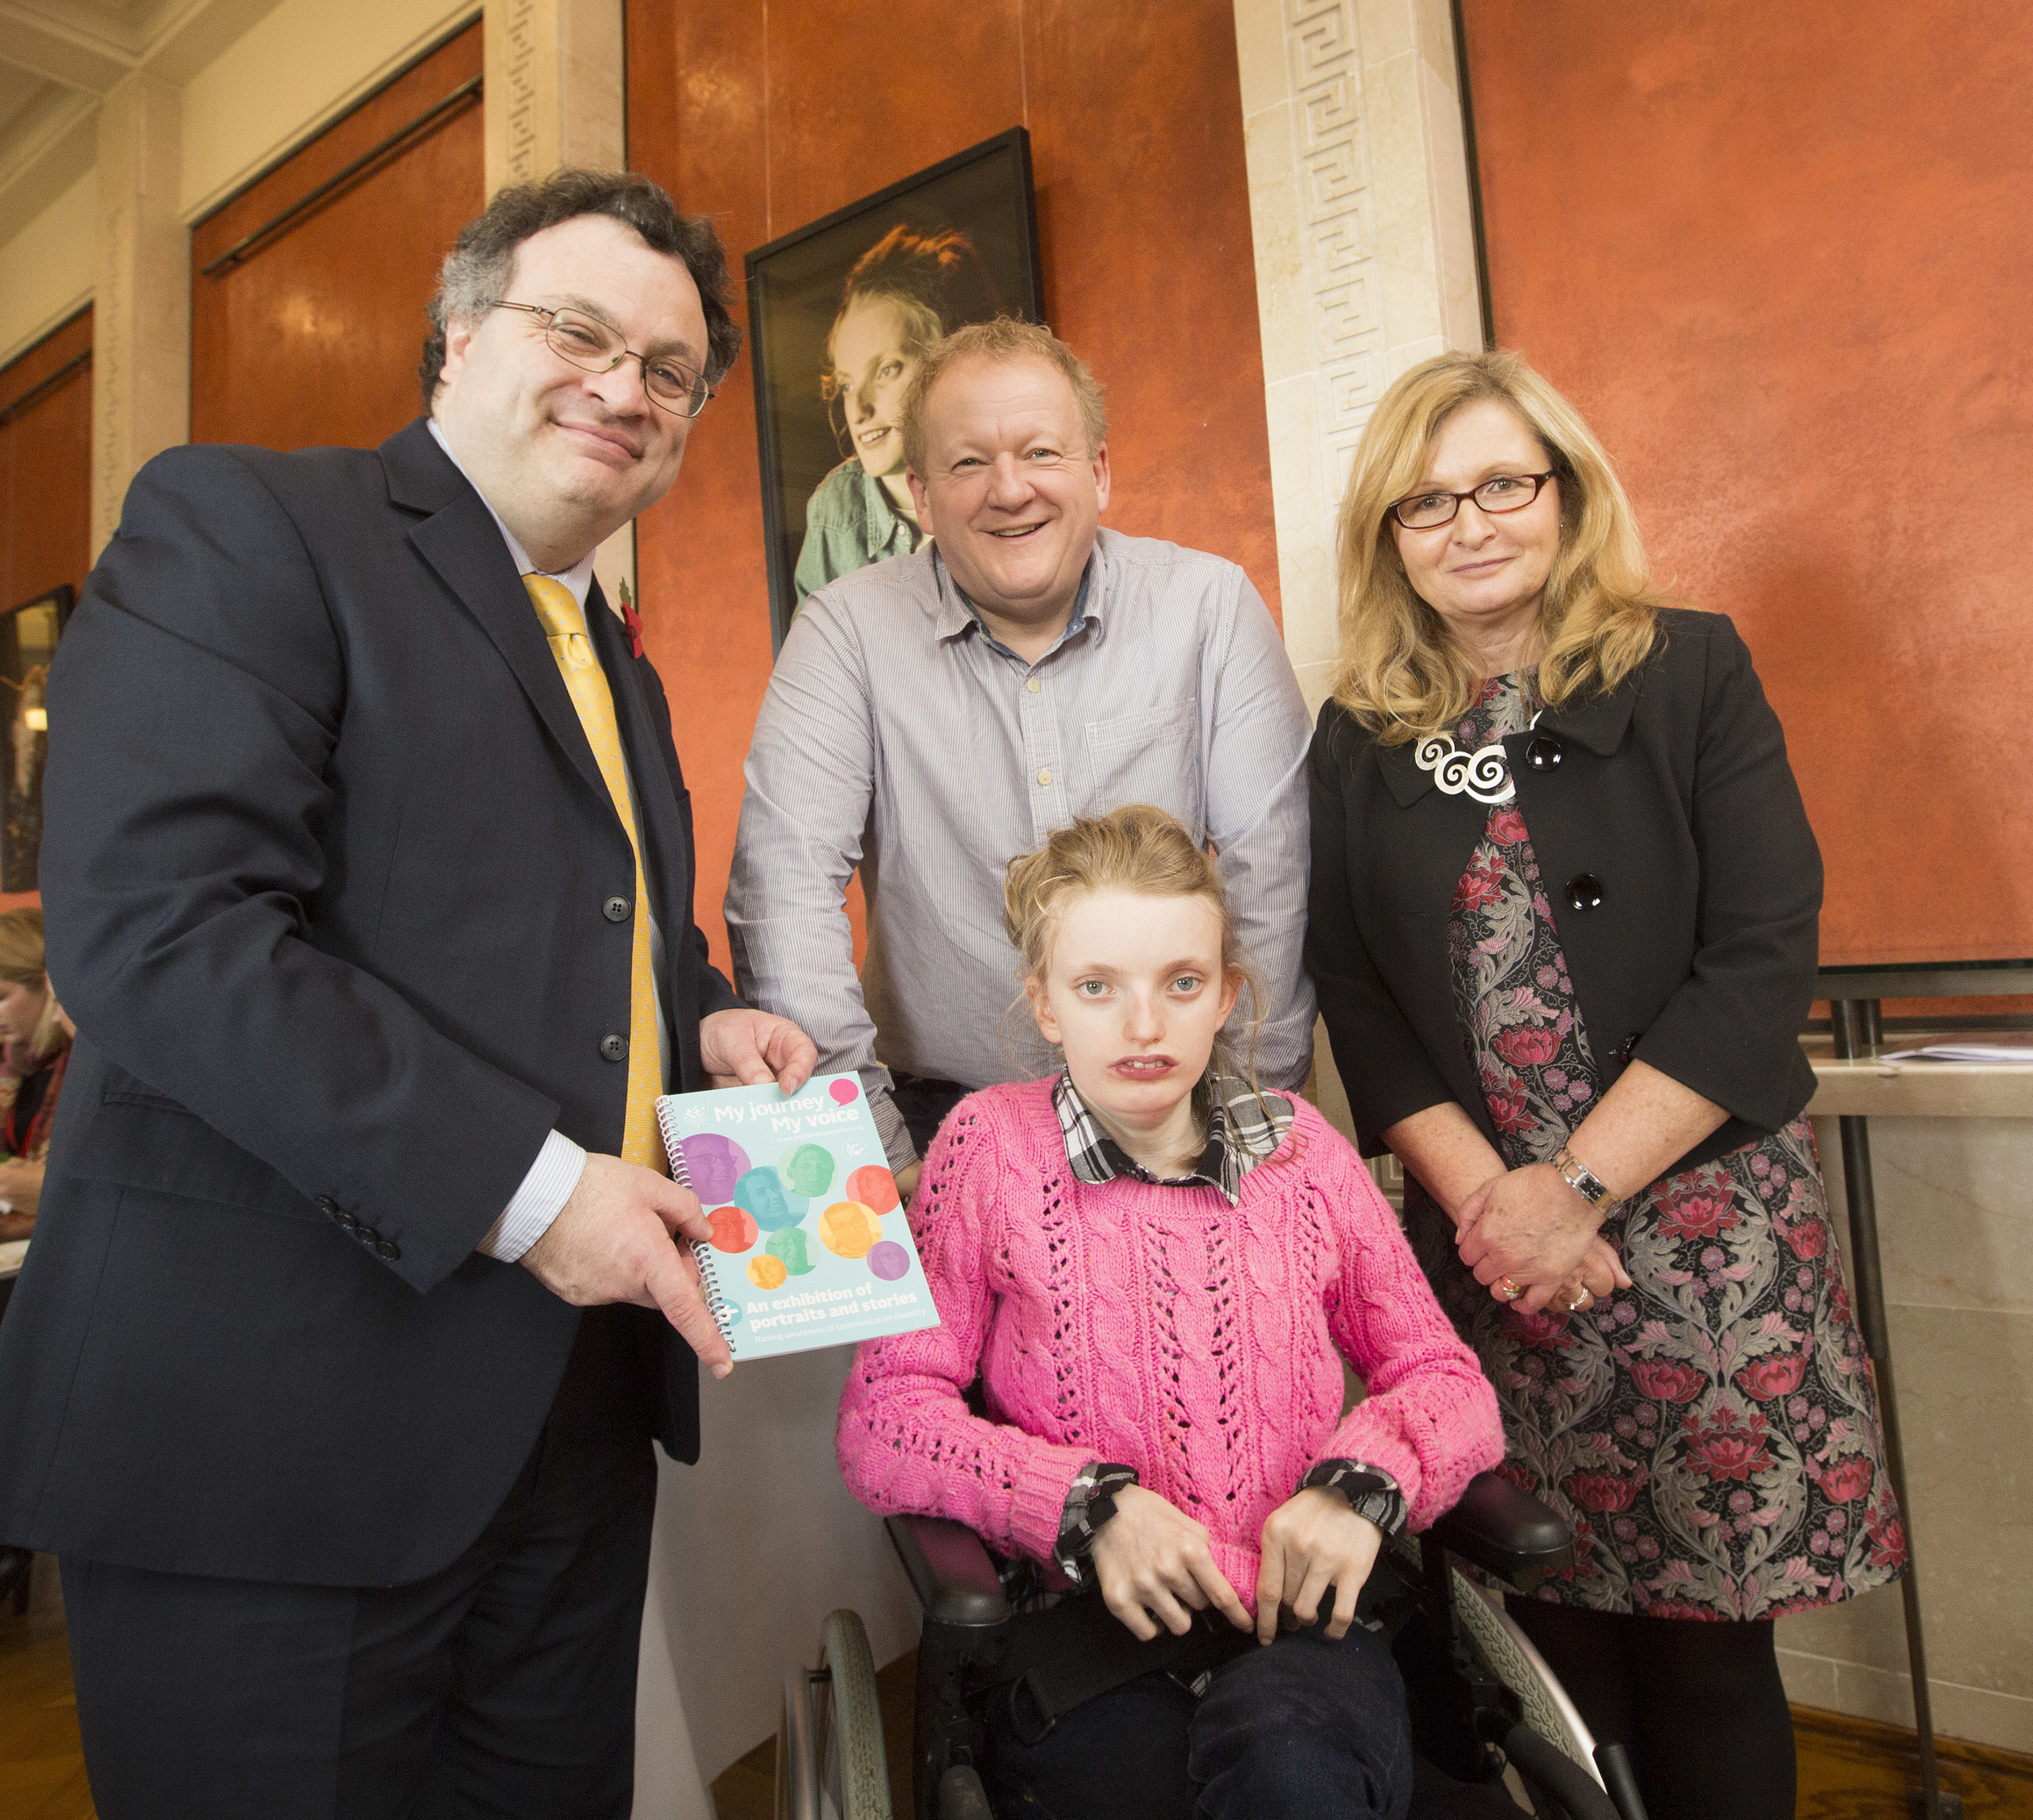 Pictured at the launch of   'My Journey, My Voice' multimedia portraits and stories exhibition to raise awareness of communication disability at Parliament Buildings, Stormont are (L-R) Minister for Employment and Learning Stephen Farry; Jemima Carlin and her dad and Alison McCullough, Royal College Speech and Language Therapist's